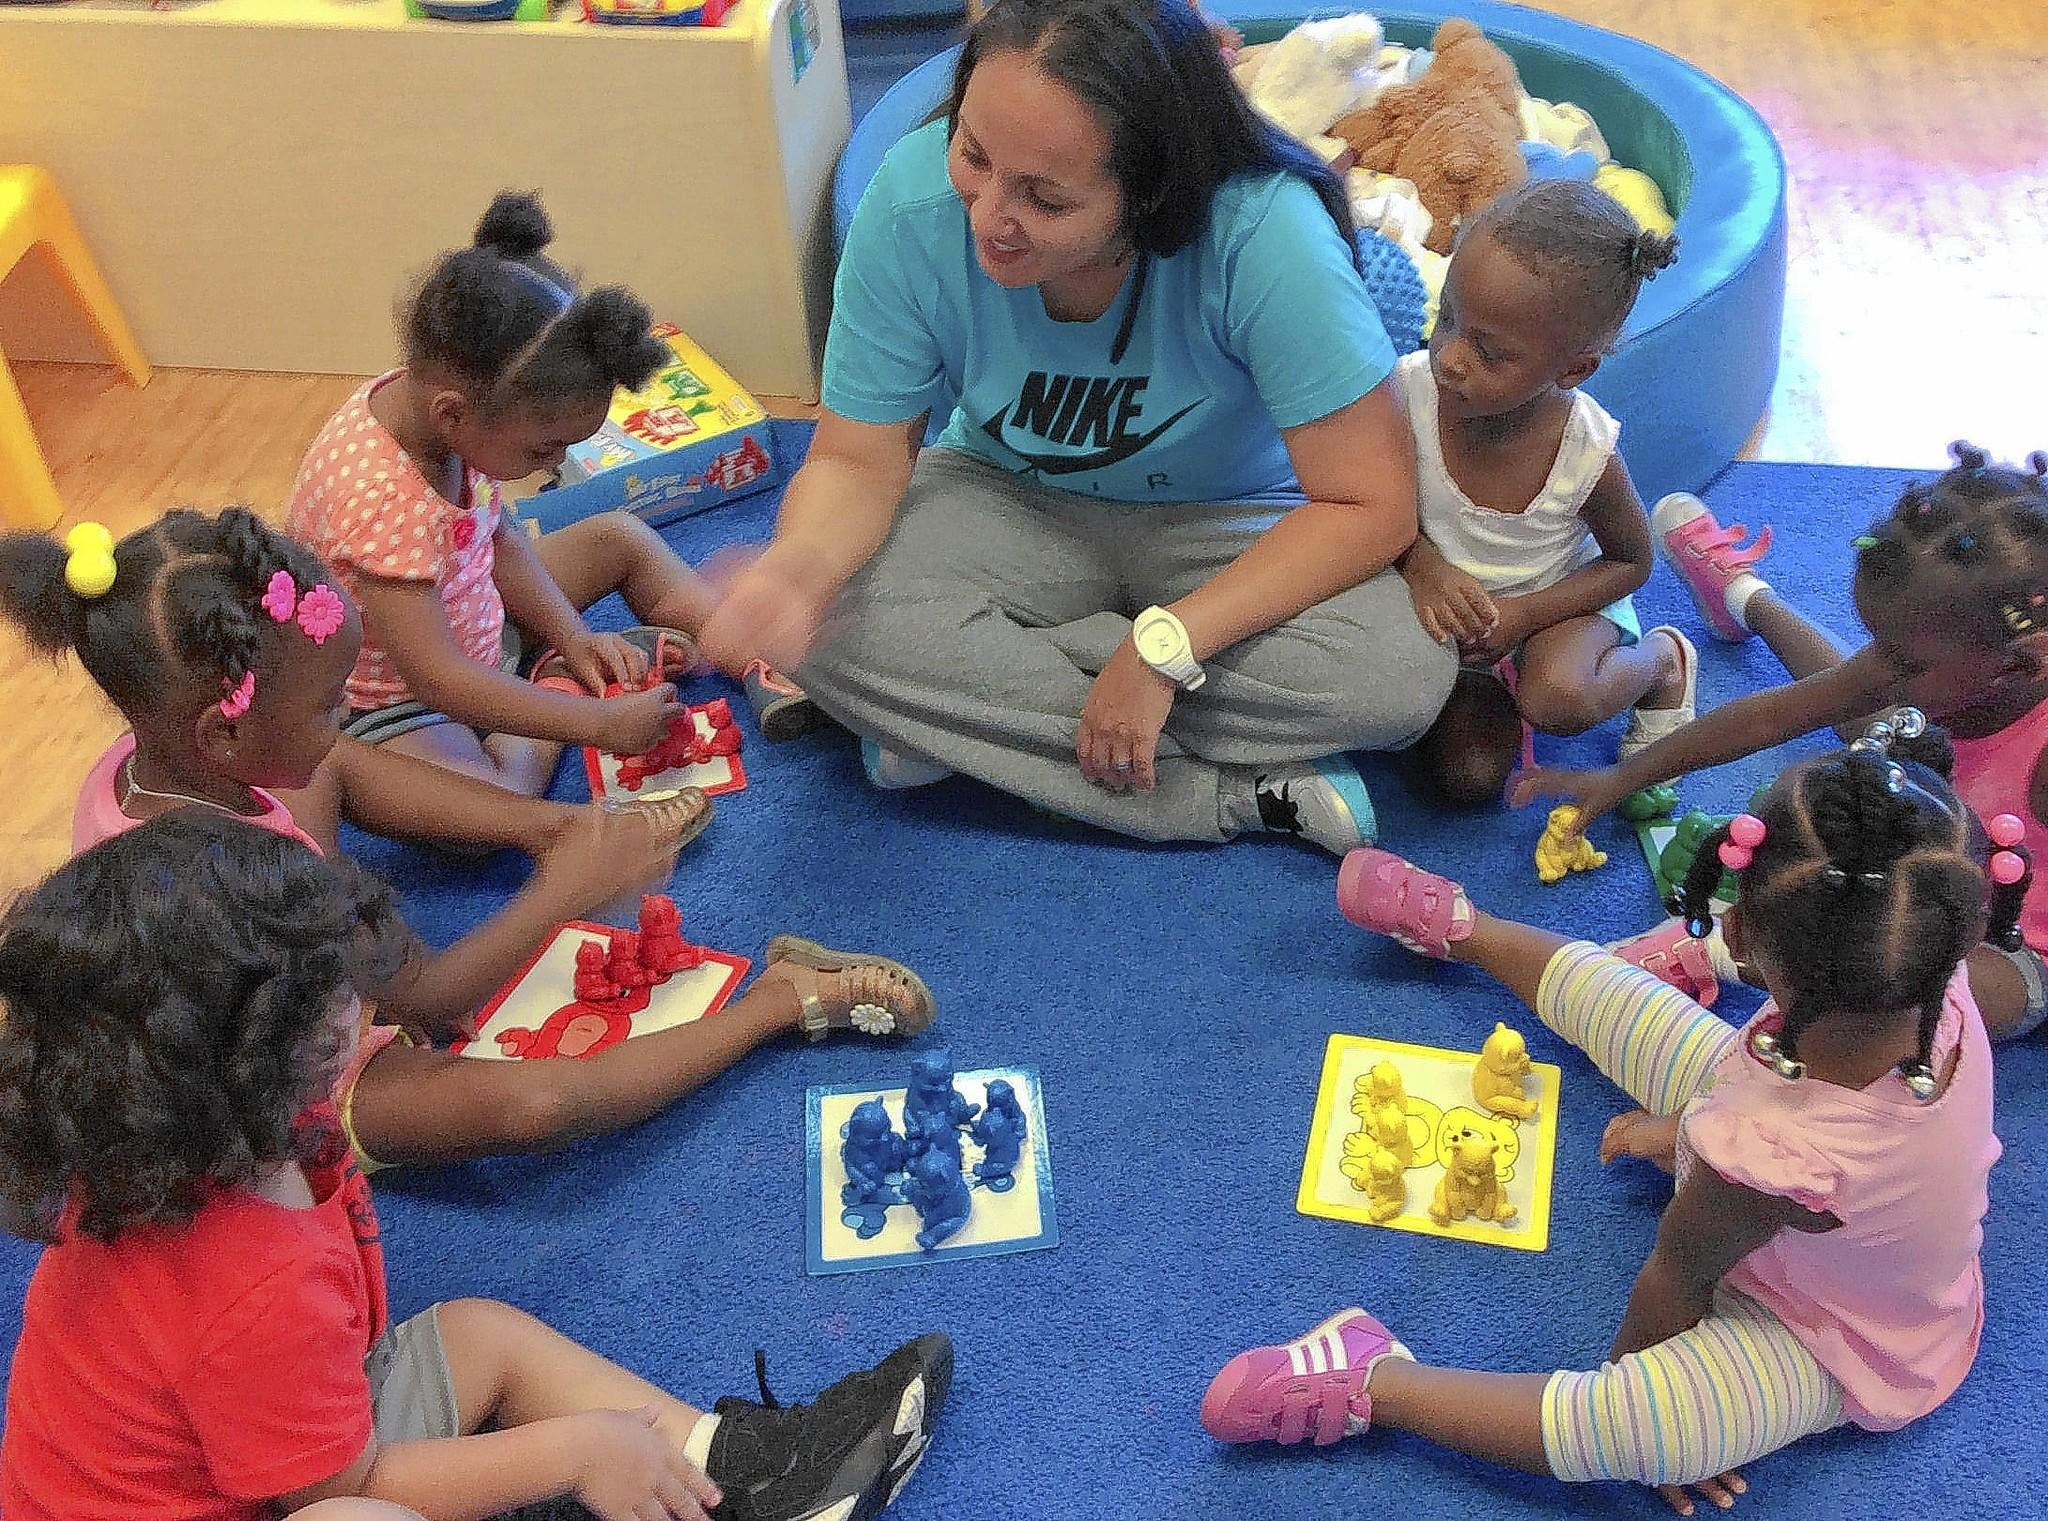 Leah De Conducts An Activity With Her Early Head Start Children At Orlando Day Nursery